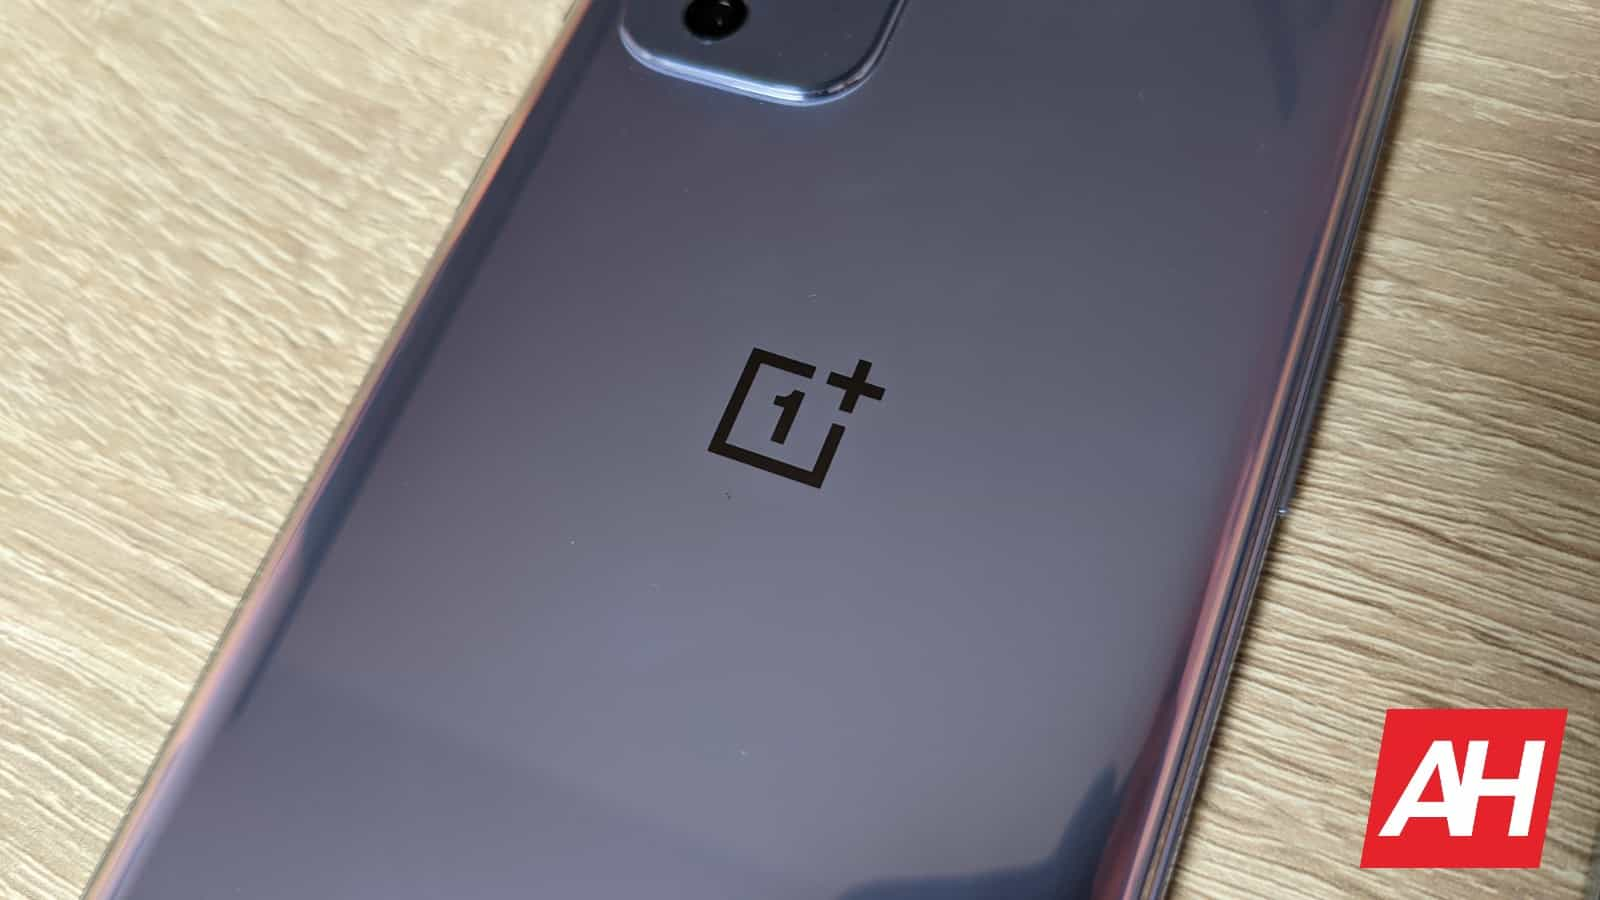 The OnePlus Store app spreads its wings and lands in more markets